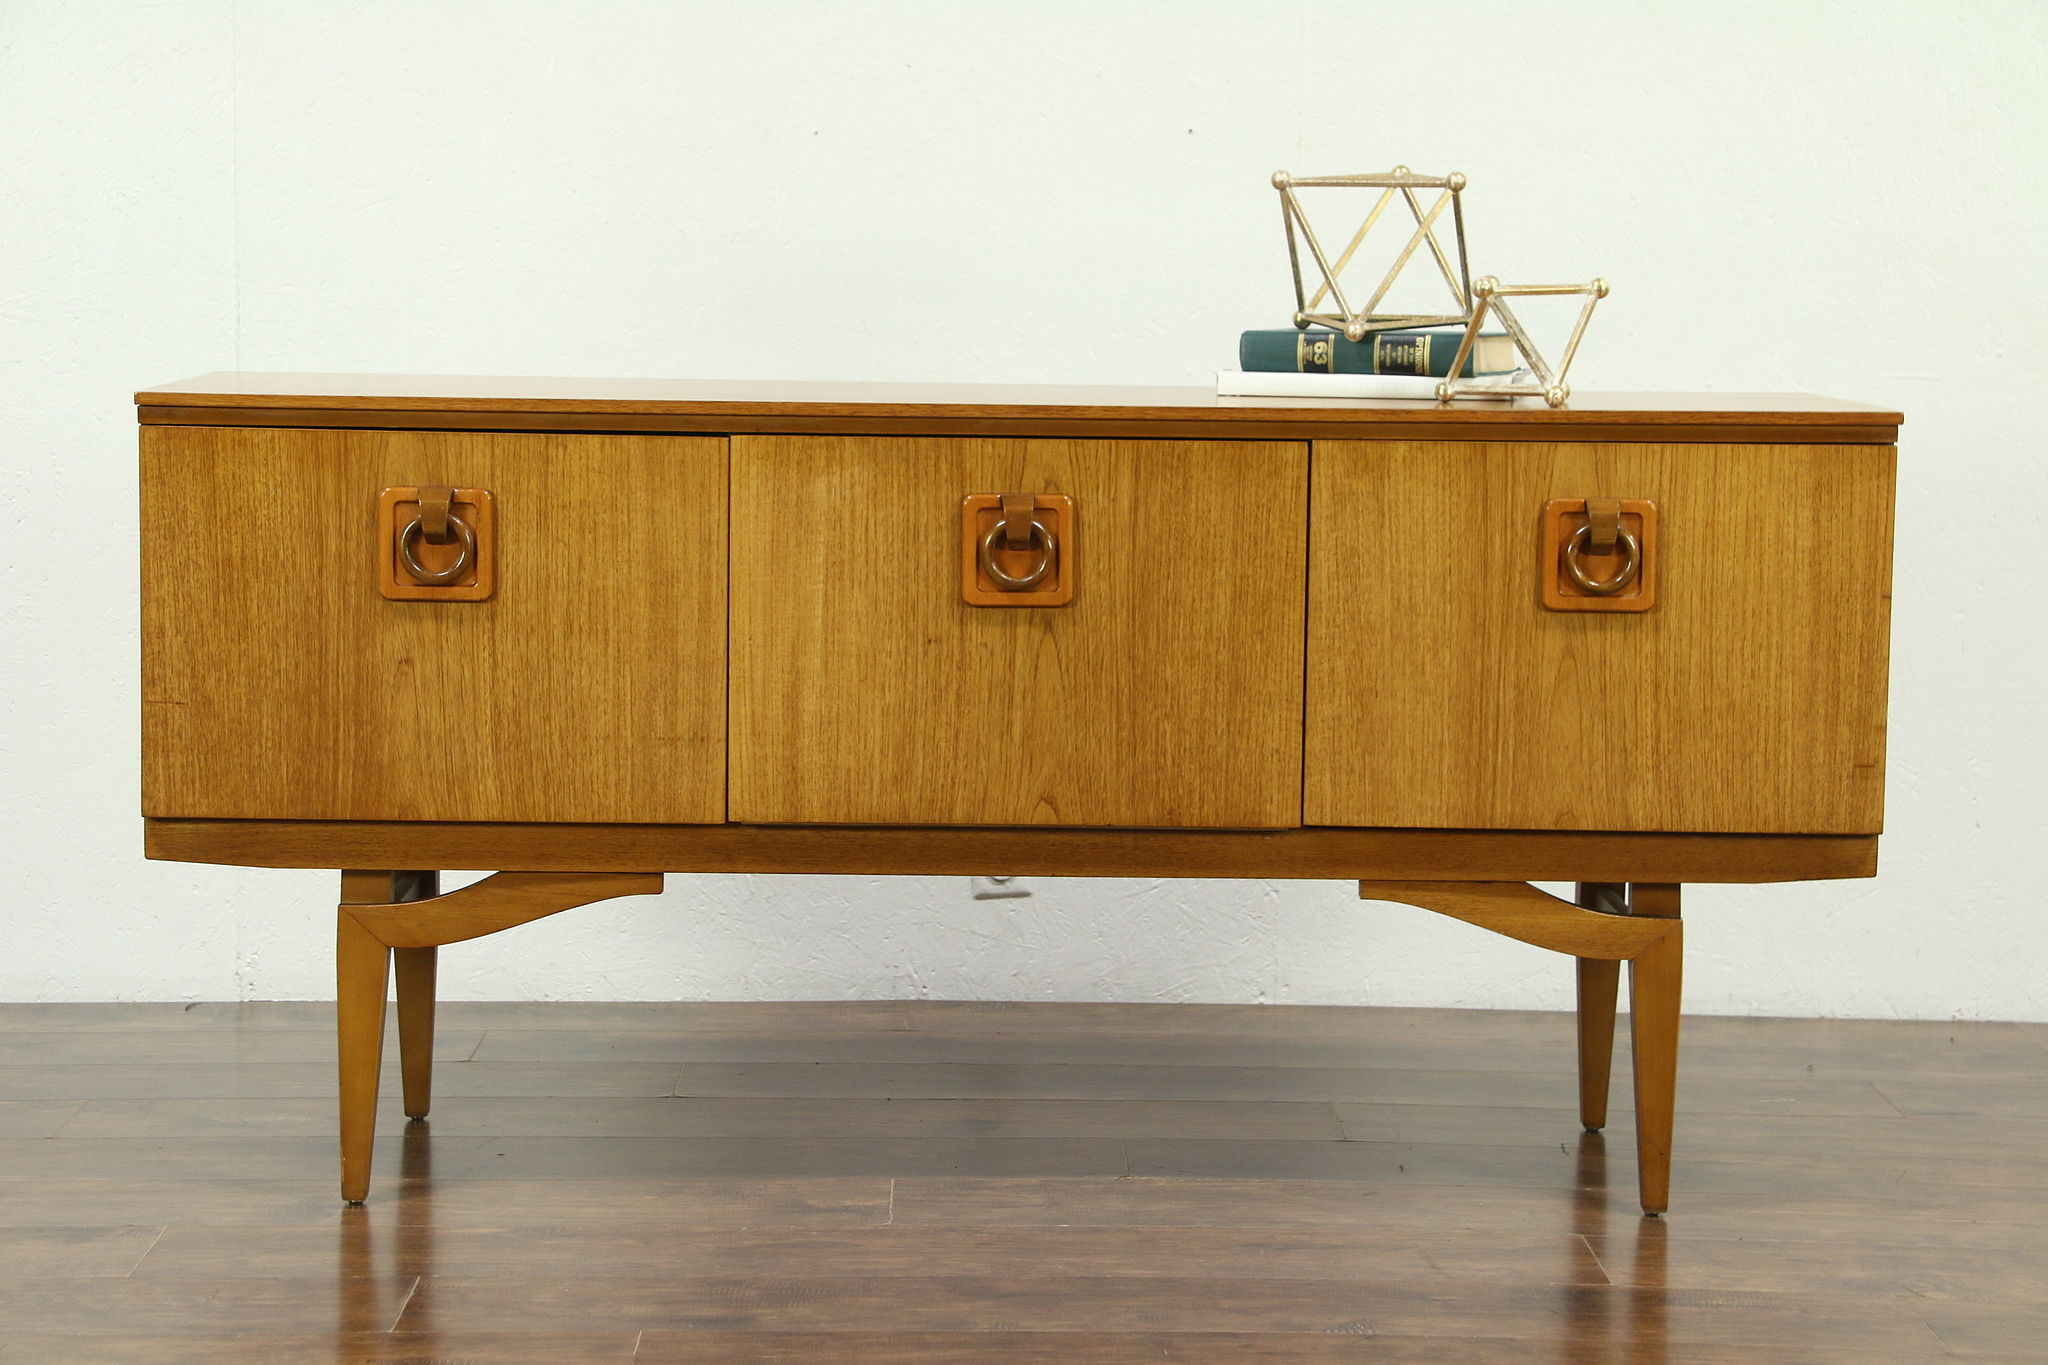 sold century available built german bar mid centur ready console player turntable stereo products w series out in cabinet vintedgeco now record